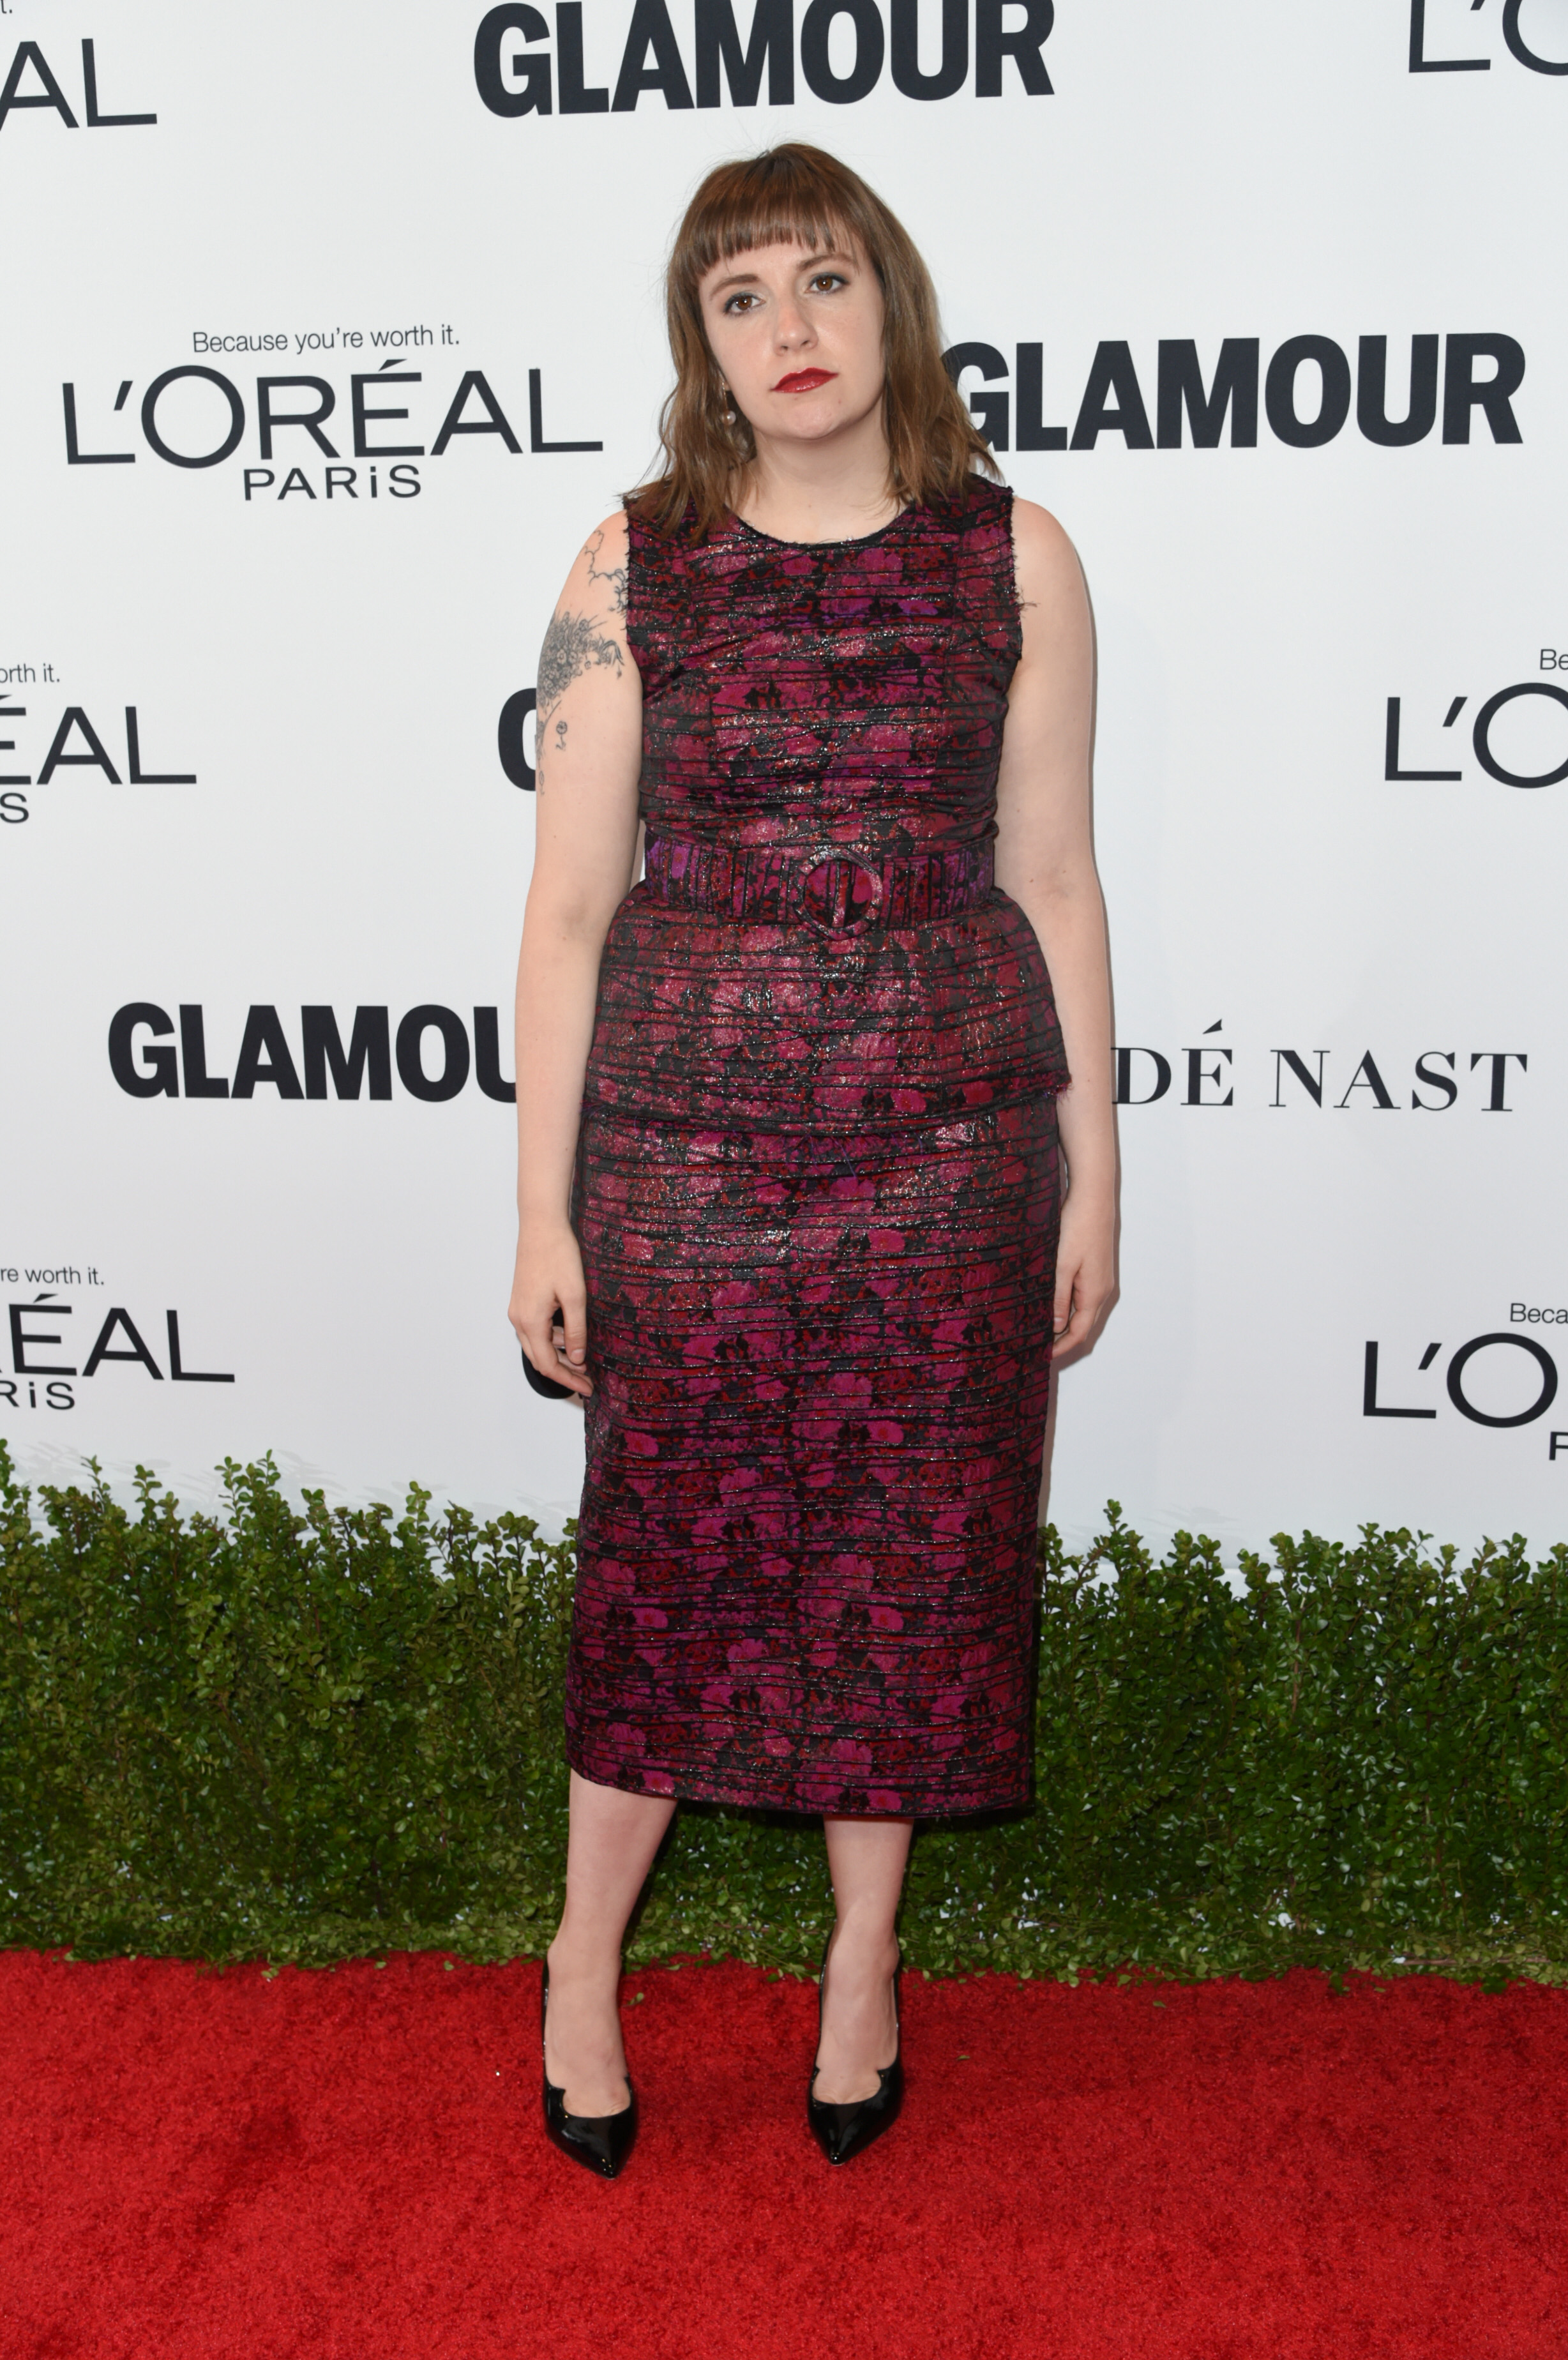 Lena Dunham at the Glamour Women of the Year party. Photo by Richard Shotwell/REX/Shutterstock